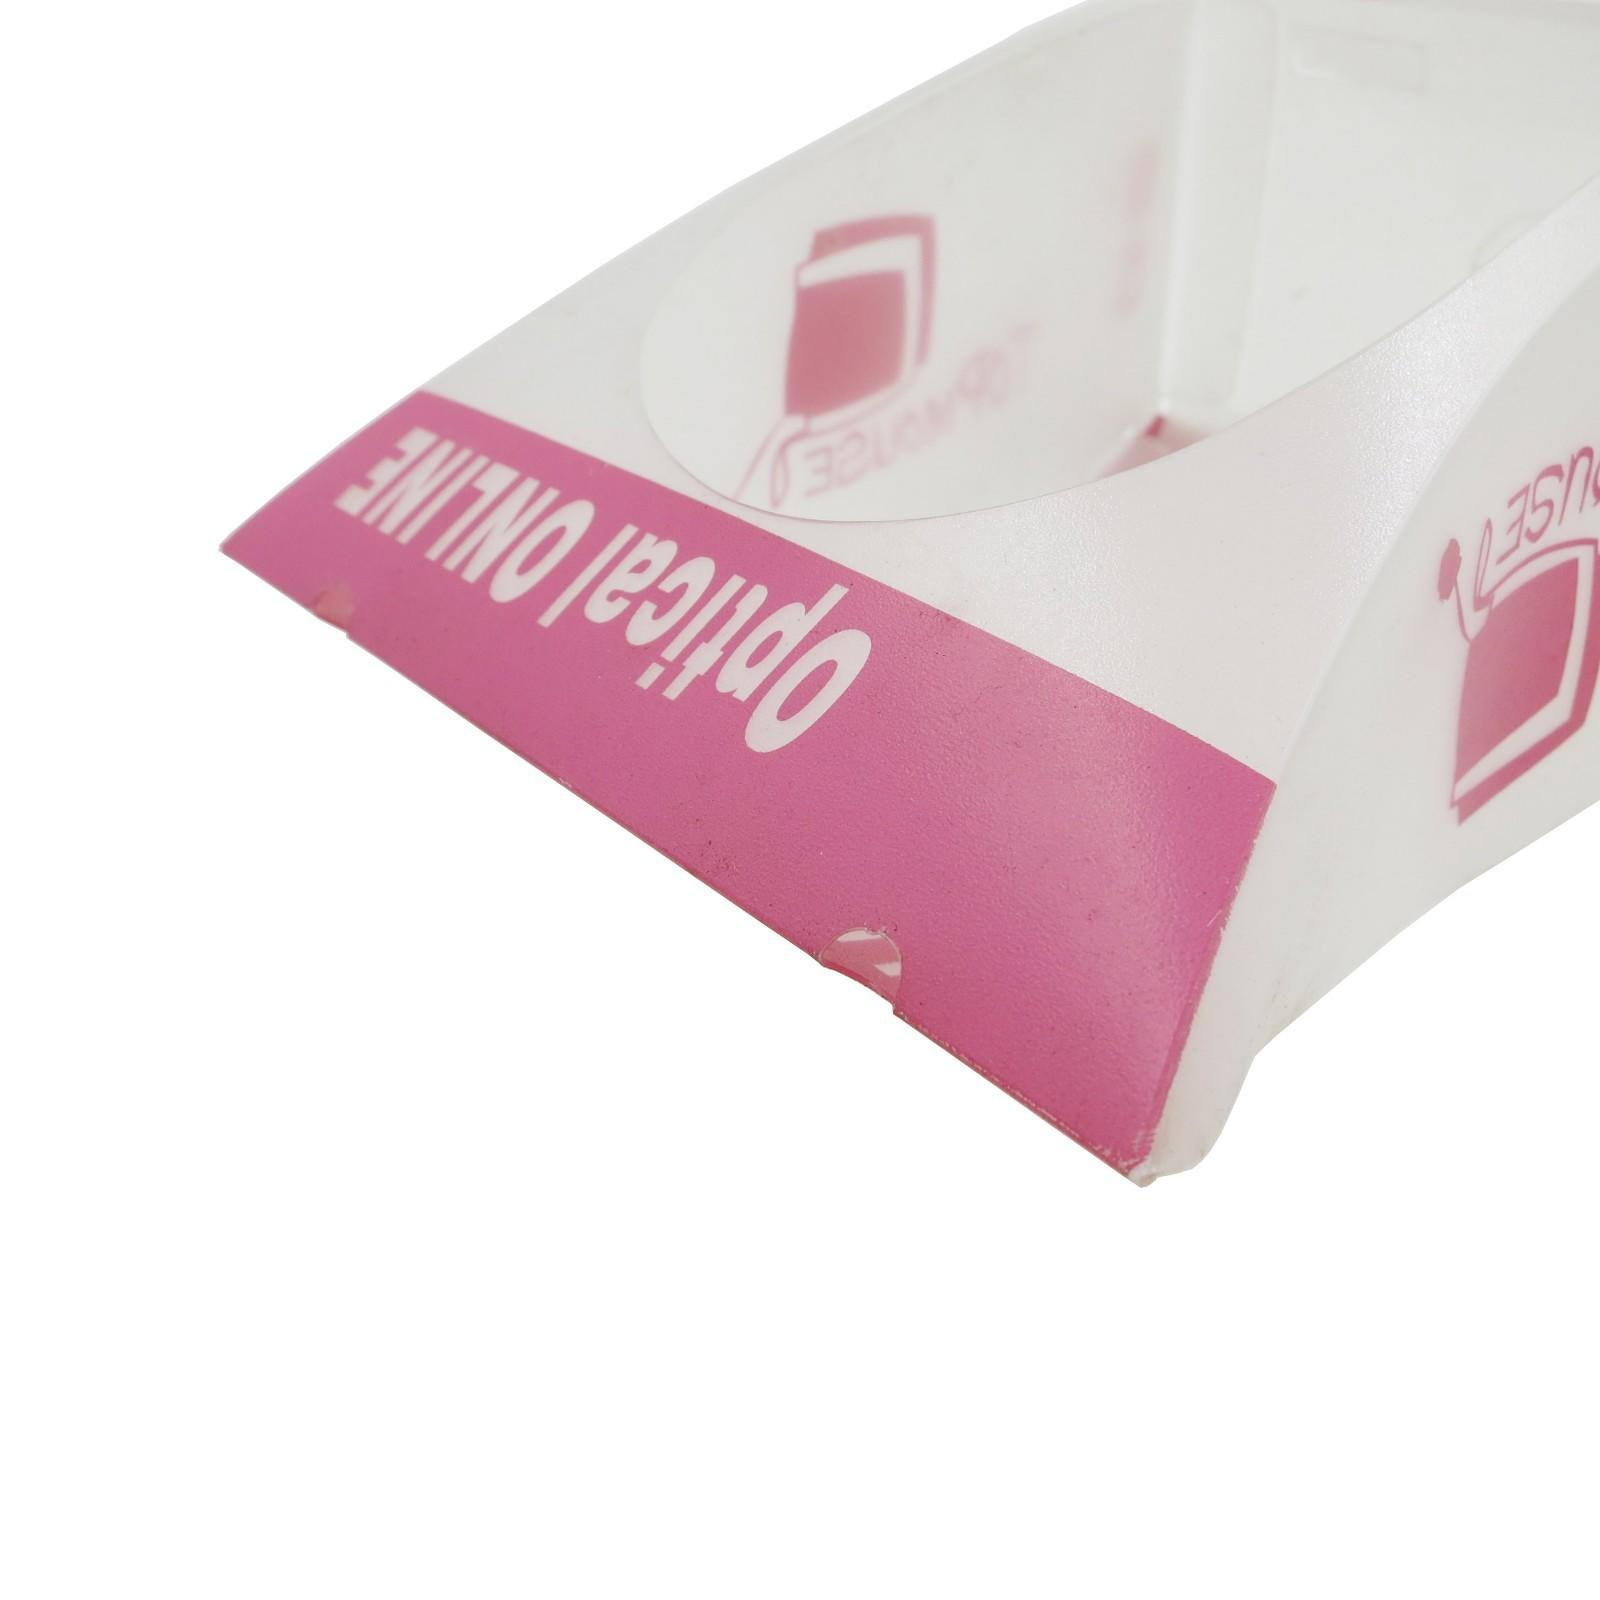 Yijianxing Plastic Products snap plastic box packaging for wholesale for packing